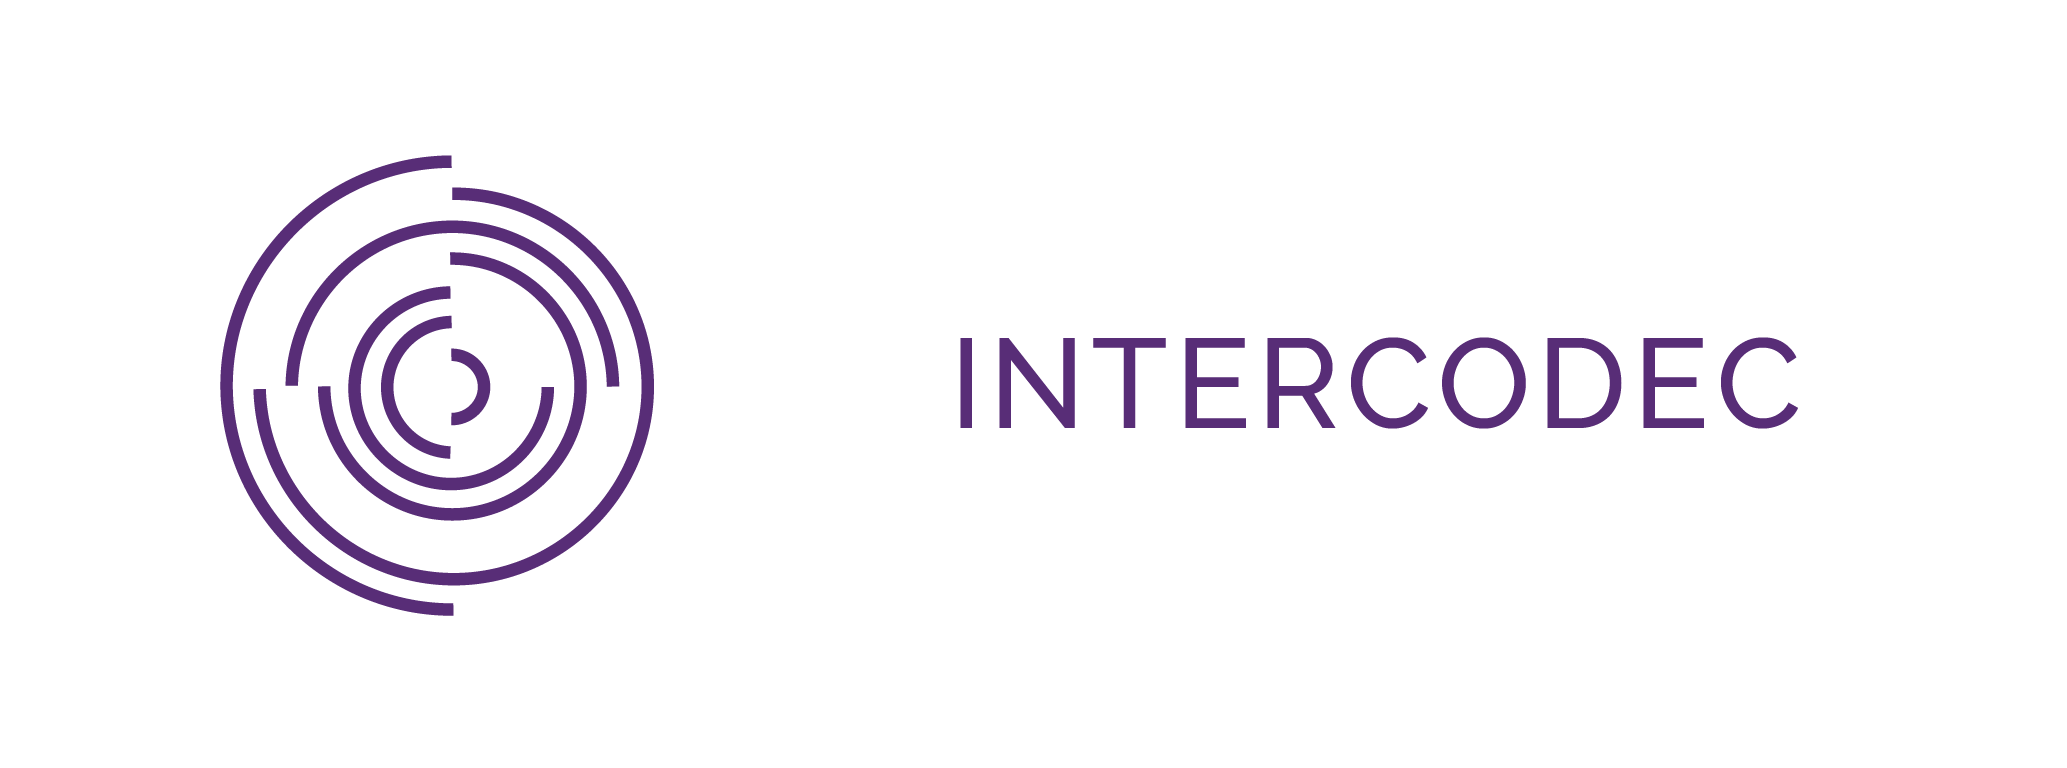 INTERCODEC